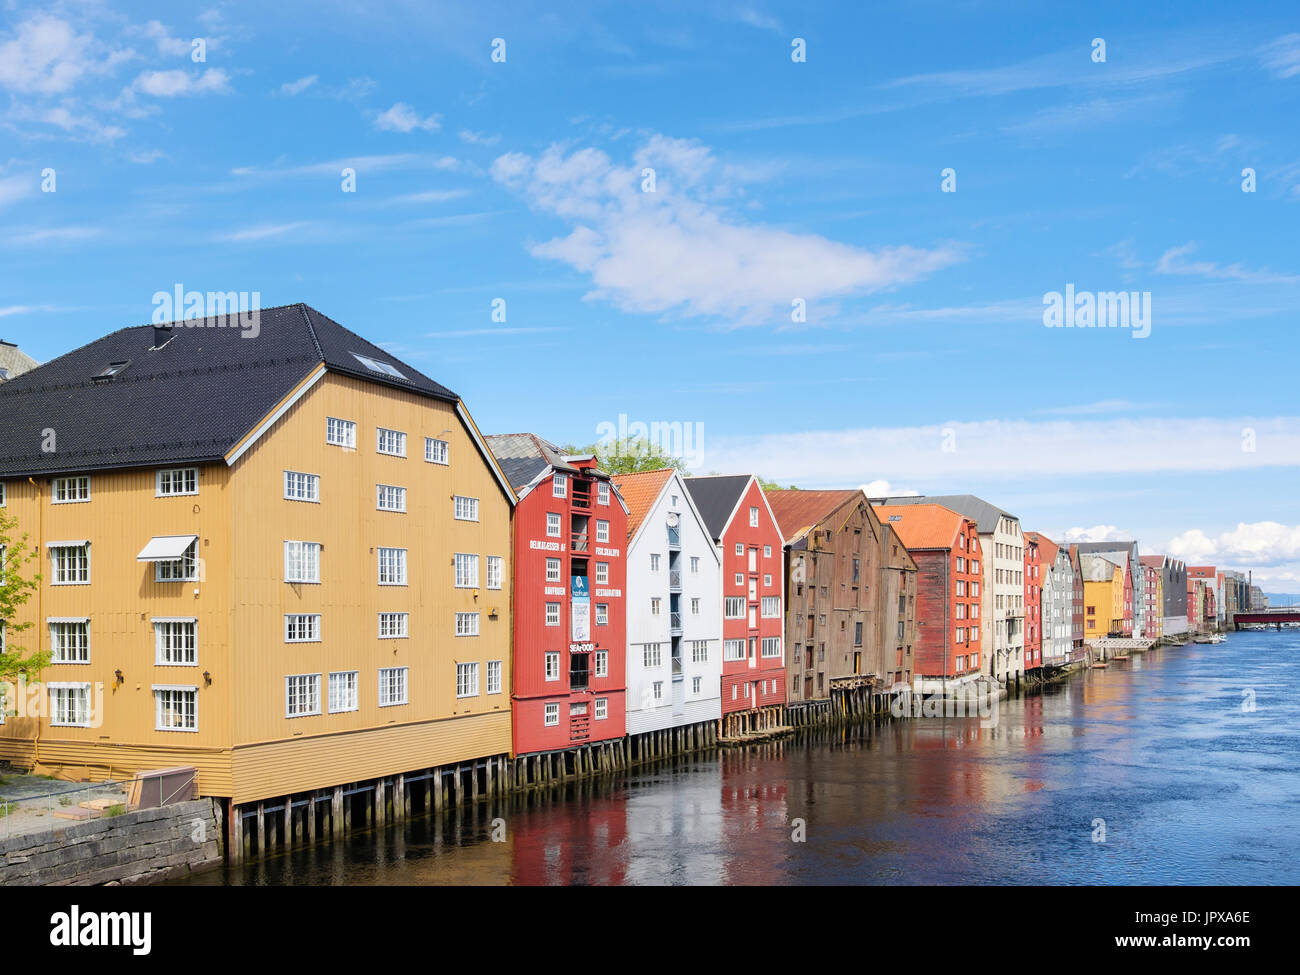 Colourful historic wooden warehouse buildings on stilts on River Nidelva waterfront in old town in summer. Trondheim Norway Scandinavia Stock Photo